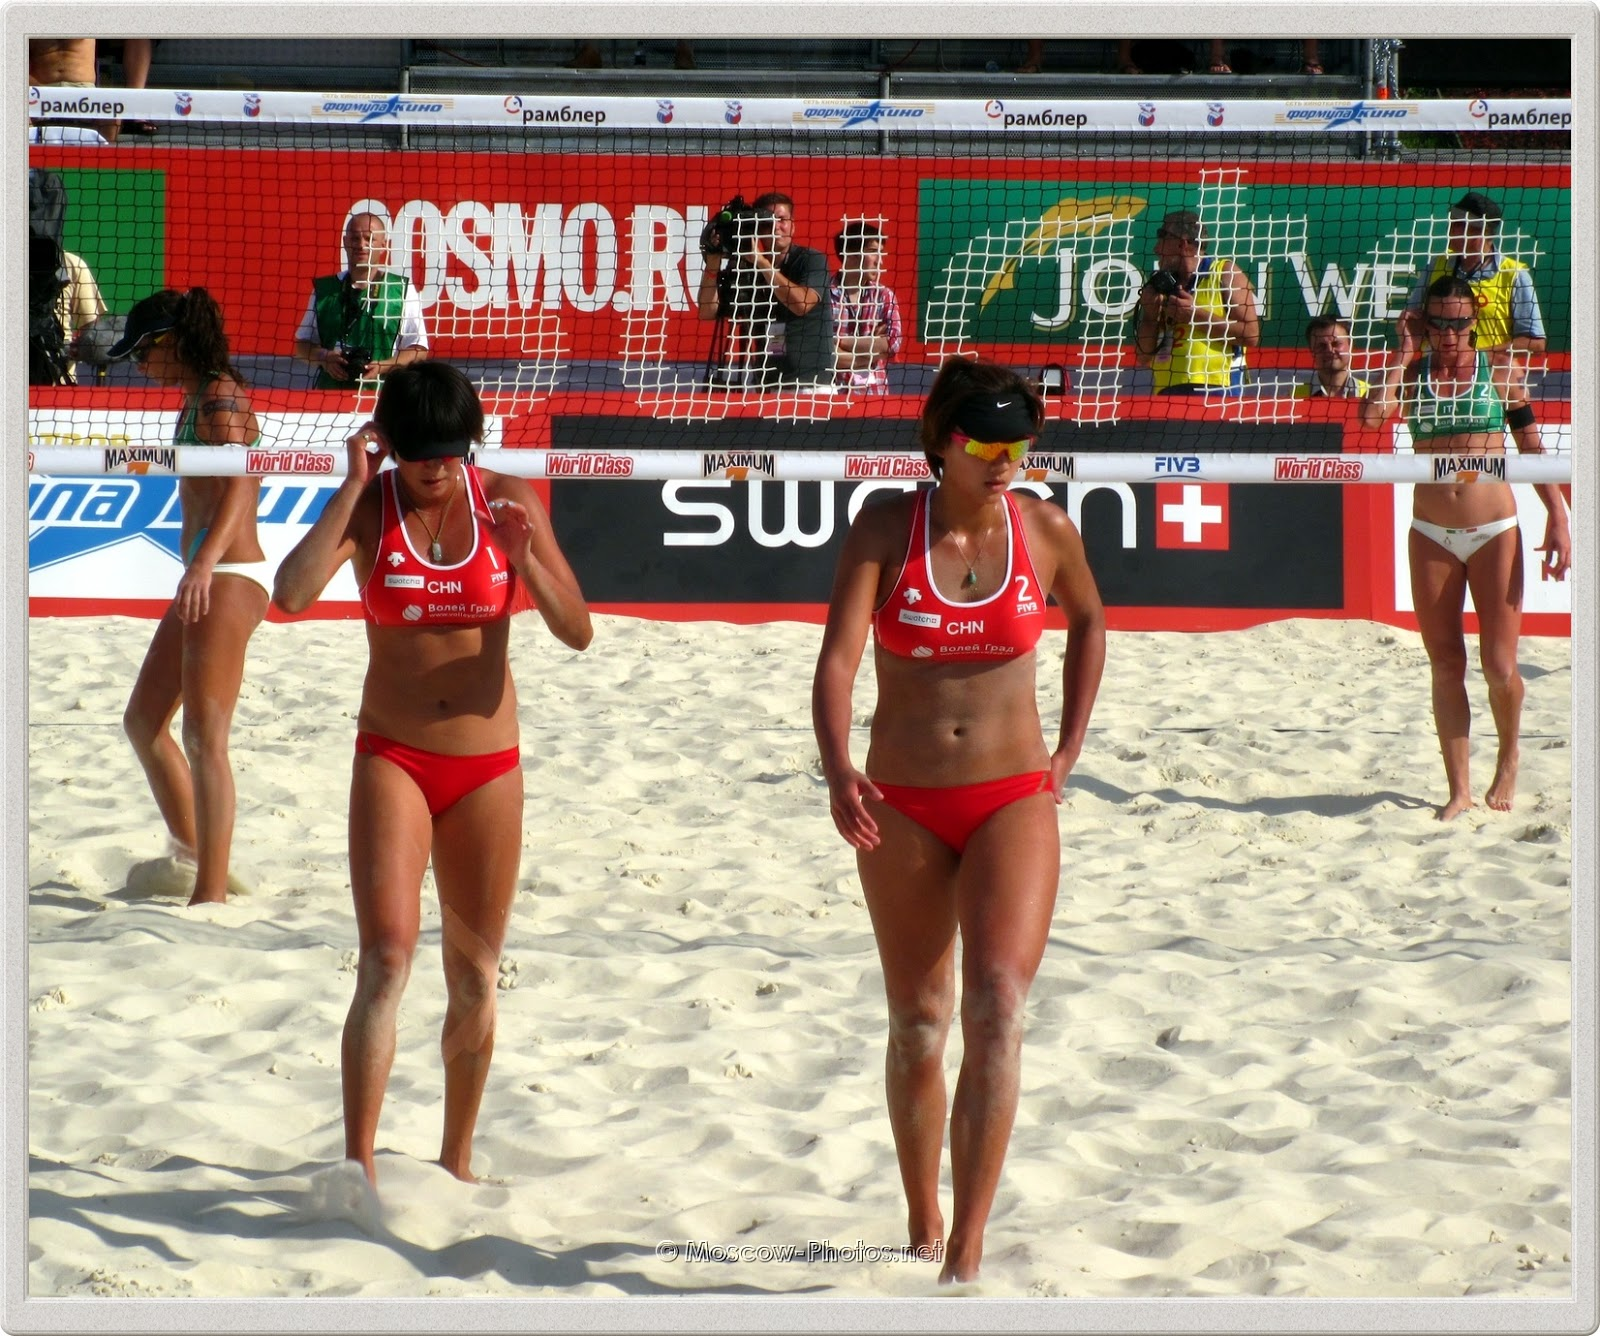 Chinese women's beach volley team